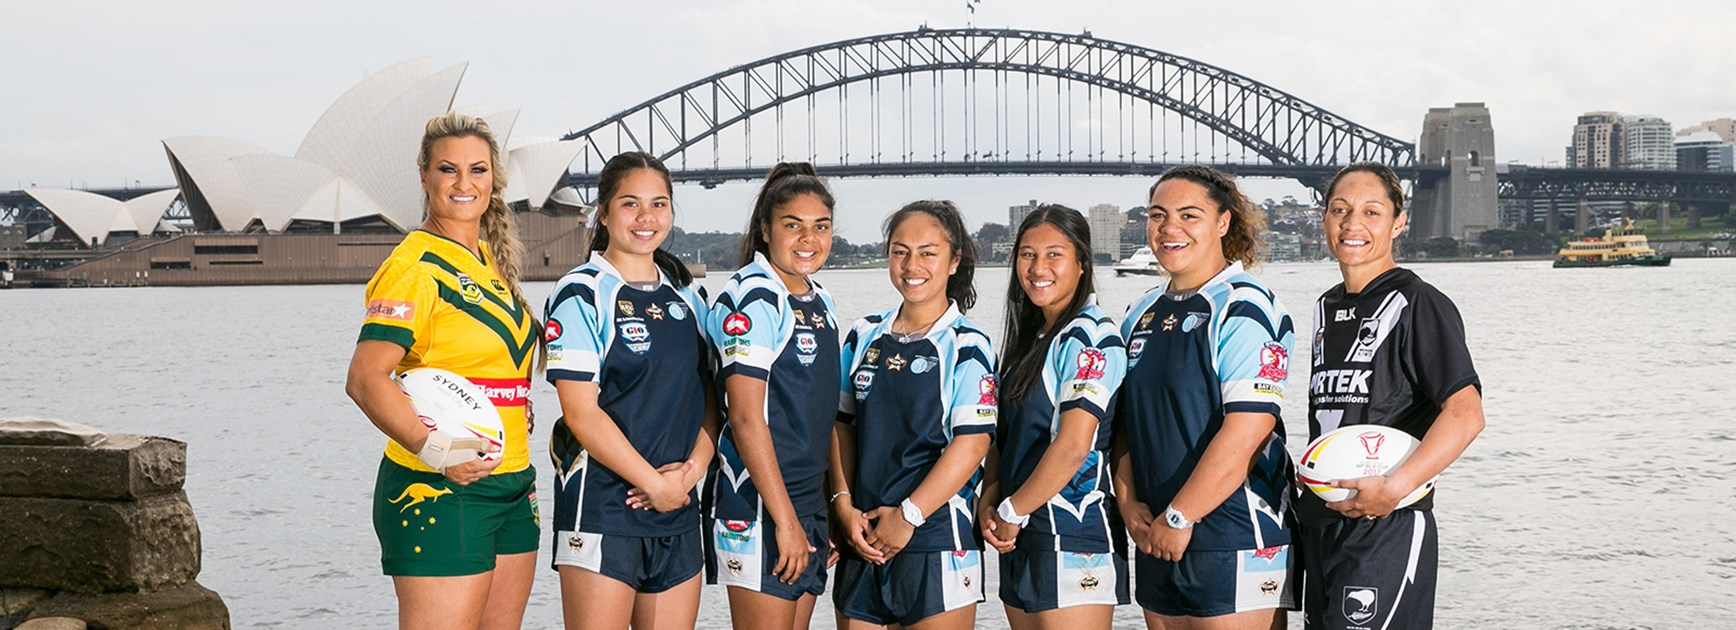 Sydney will host the 2017 Women's Rugby League World Cup.